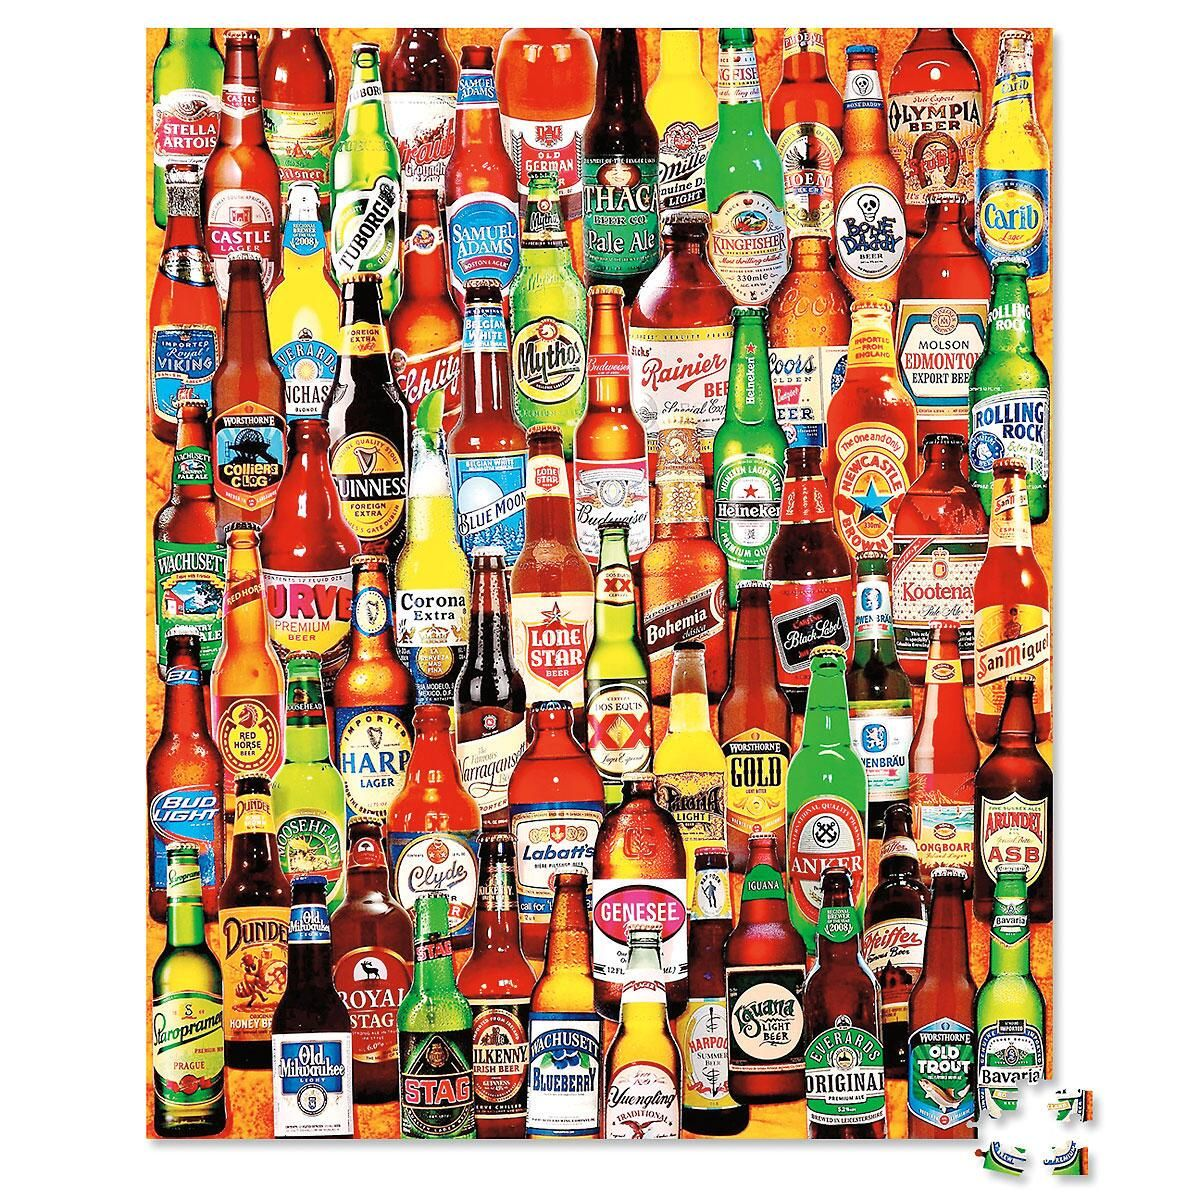 99 Bottles of Beer on the Wall Puzzle